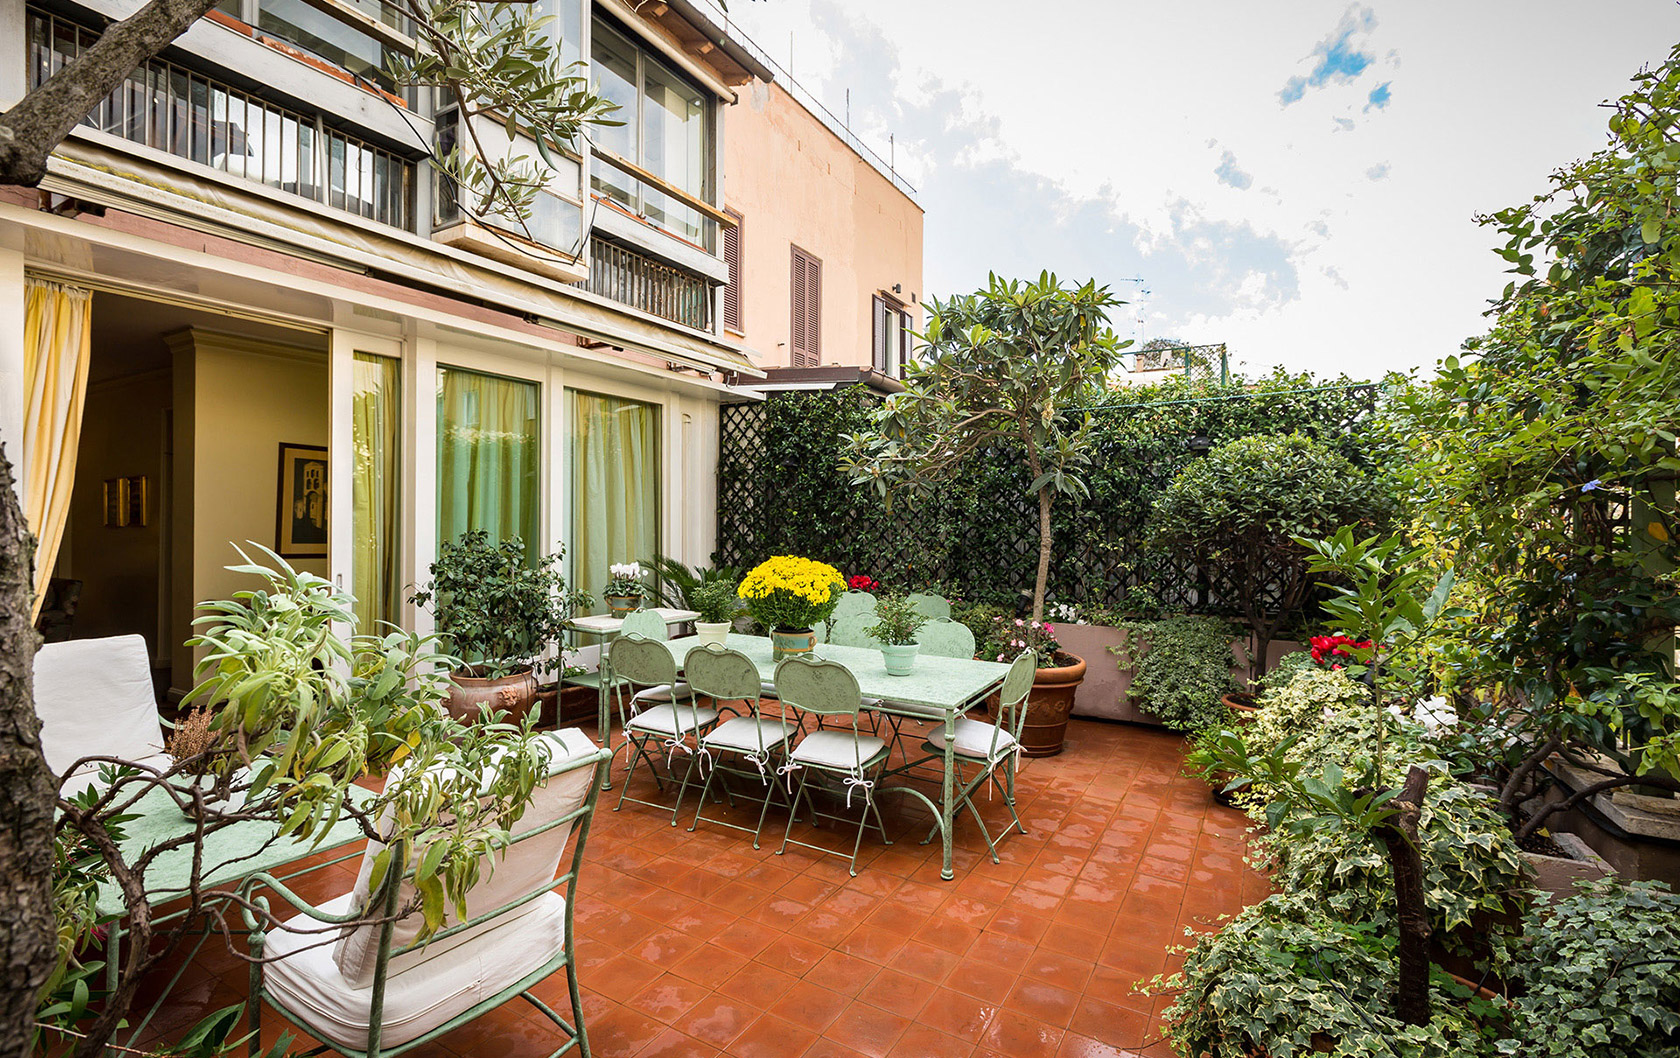 Best of Rome: Fabulous Spagna Apartment Has It All!